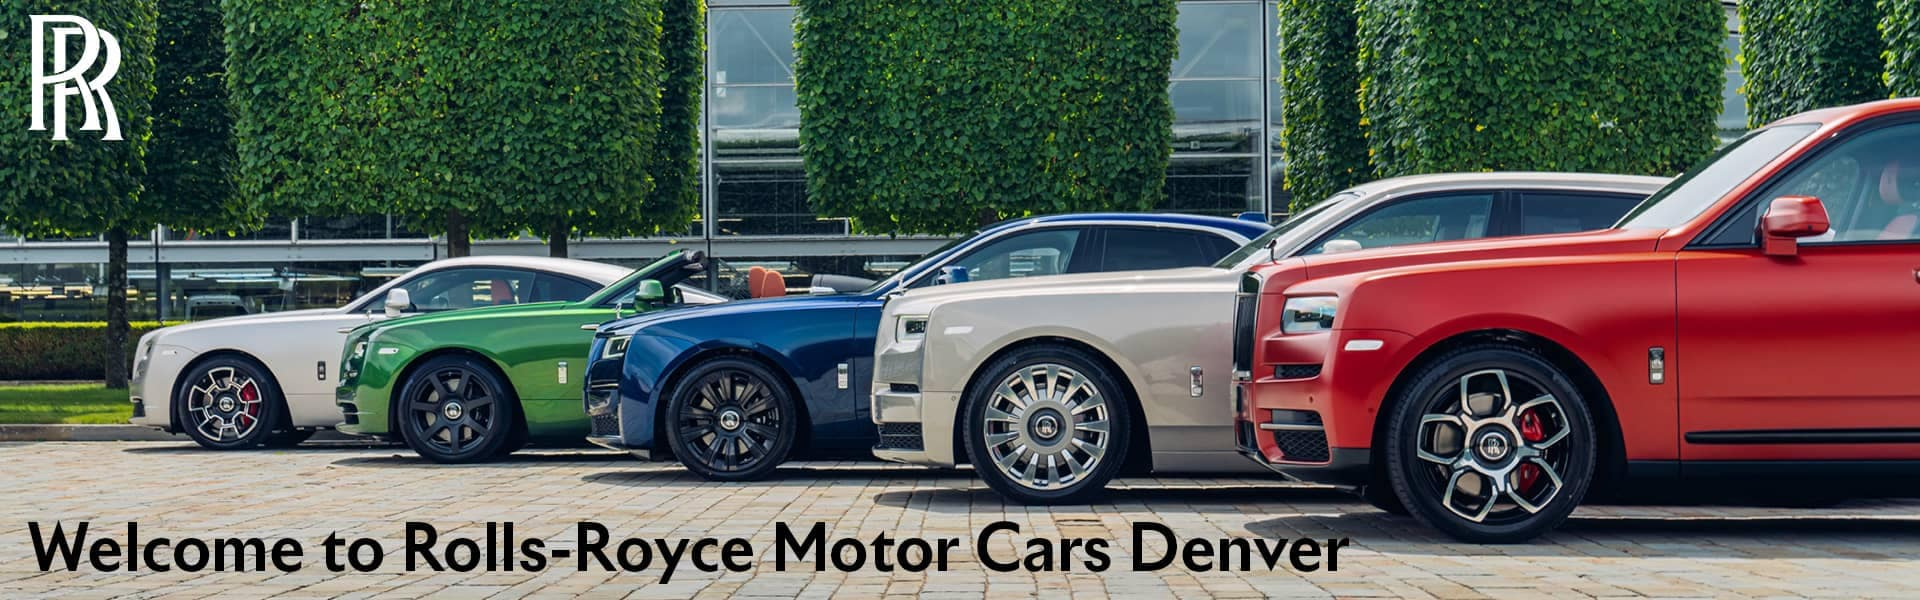 Welcome to Rolls-Royce Motor Cars Denver